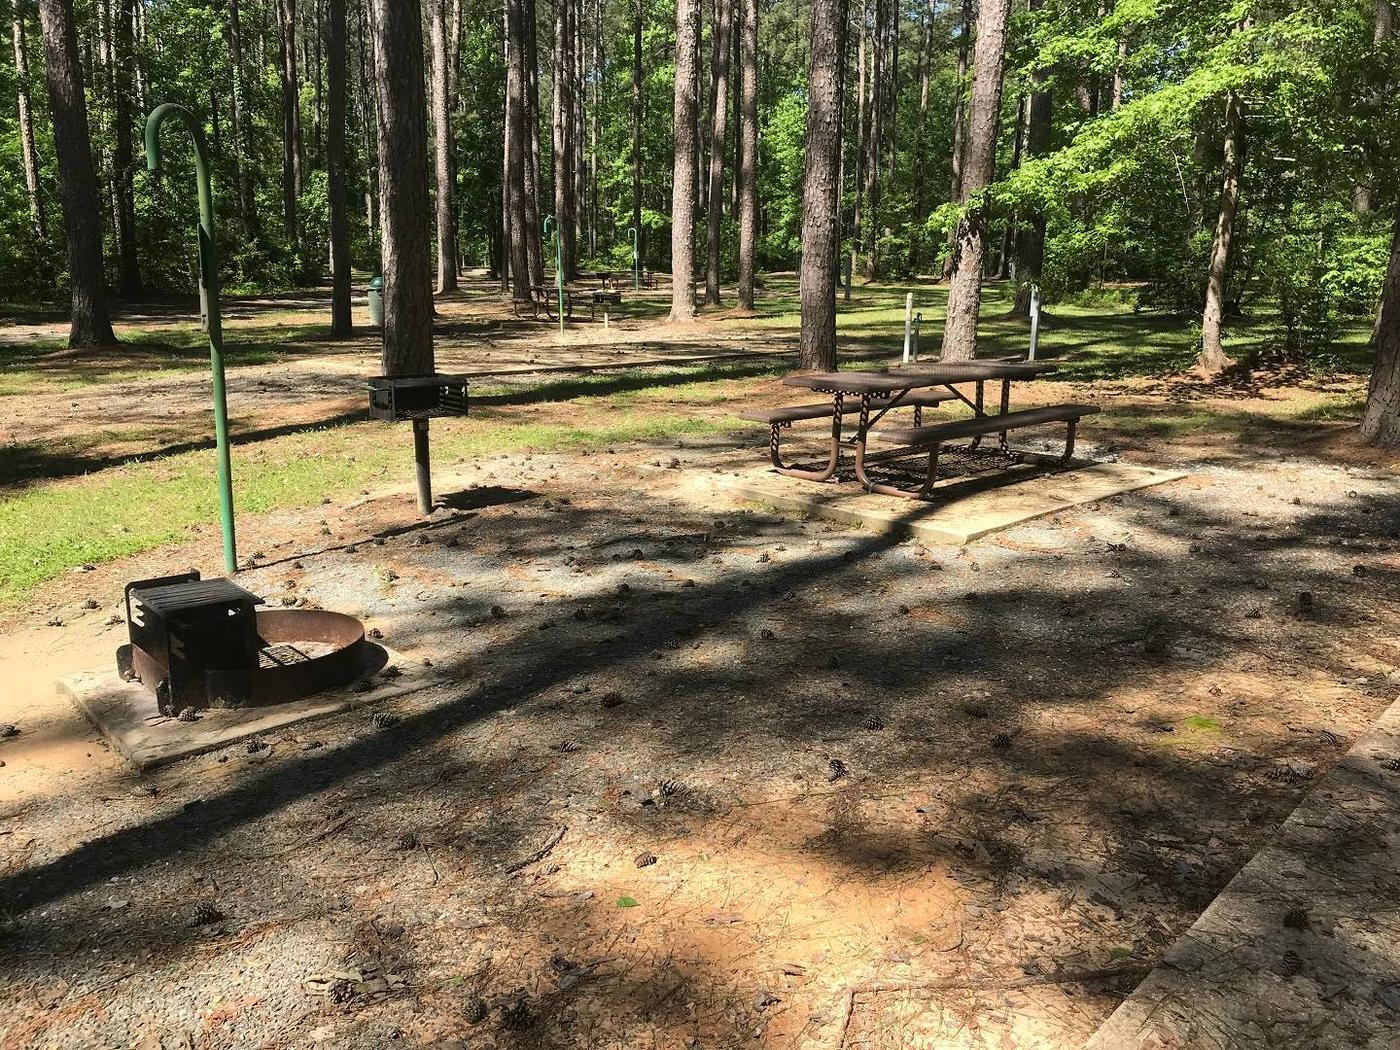 Shaded Class A Campsite 19Shaded Class A Campsite #19. RV pad, water, and 20/30/50 AMP electric hook-ups as well as basic campsite amenities including a picnic table, lantern post, fire ring, trash can and grill.